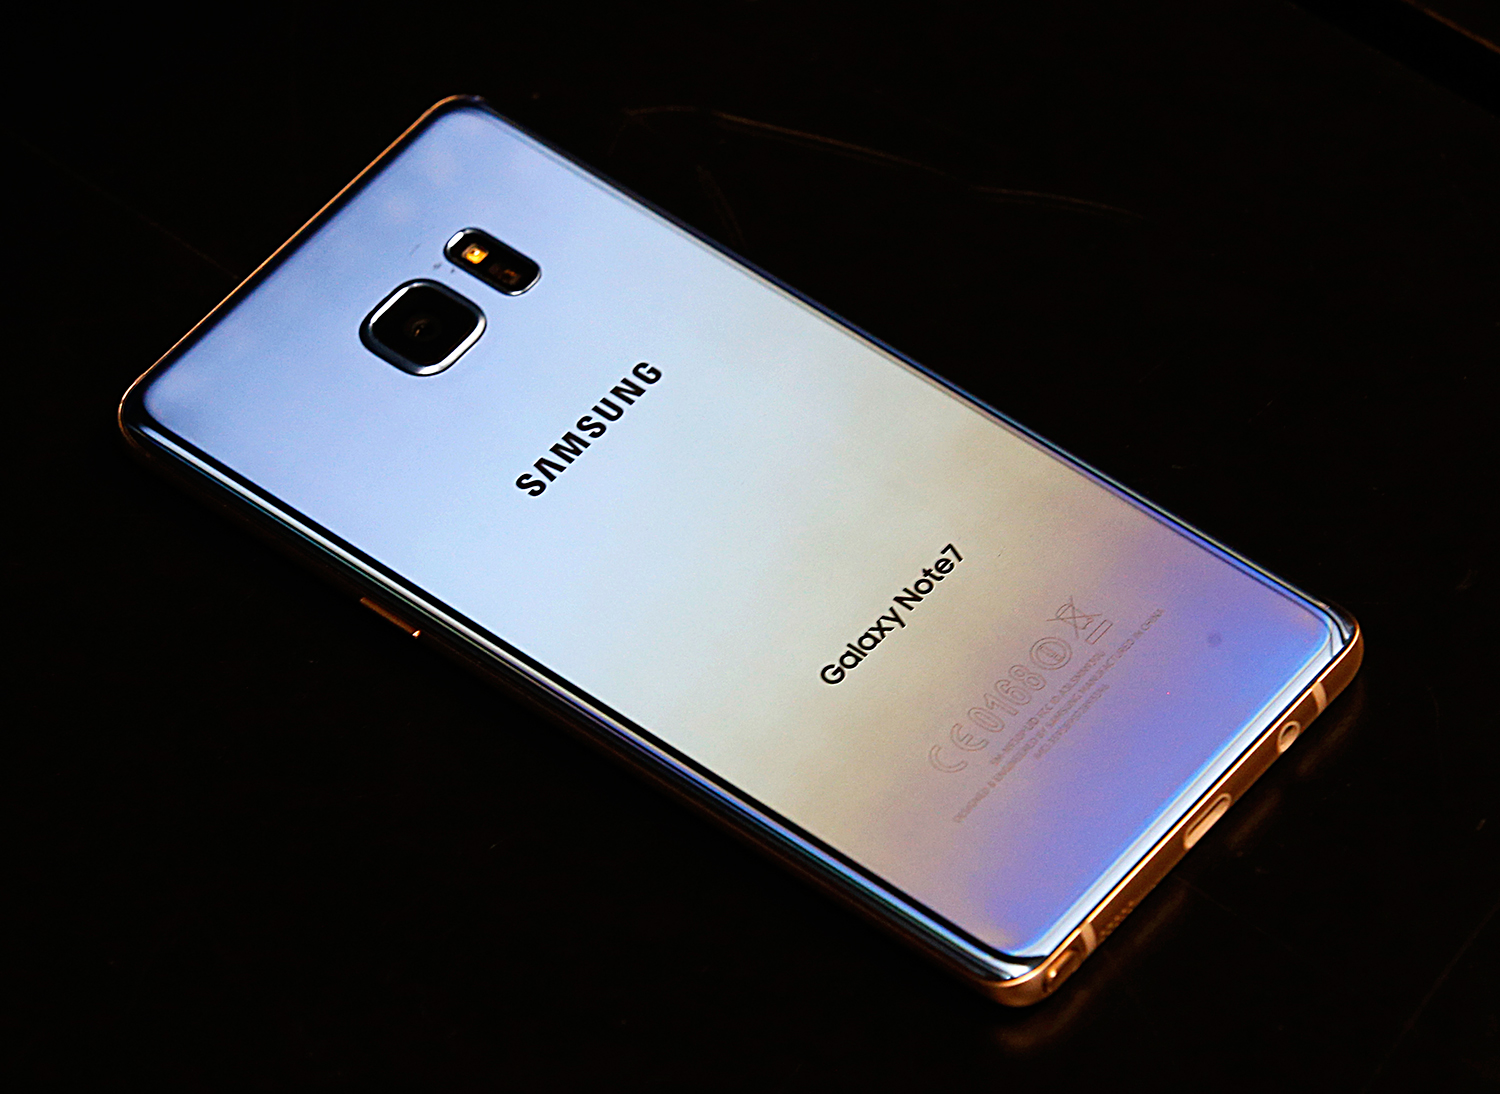 Samsung Galaxy Note 7 Refund